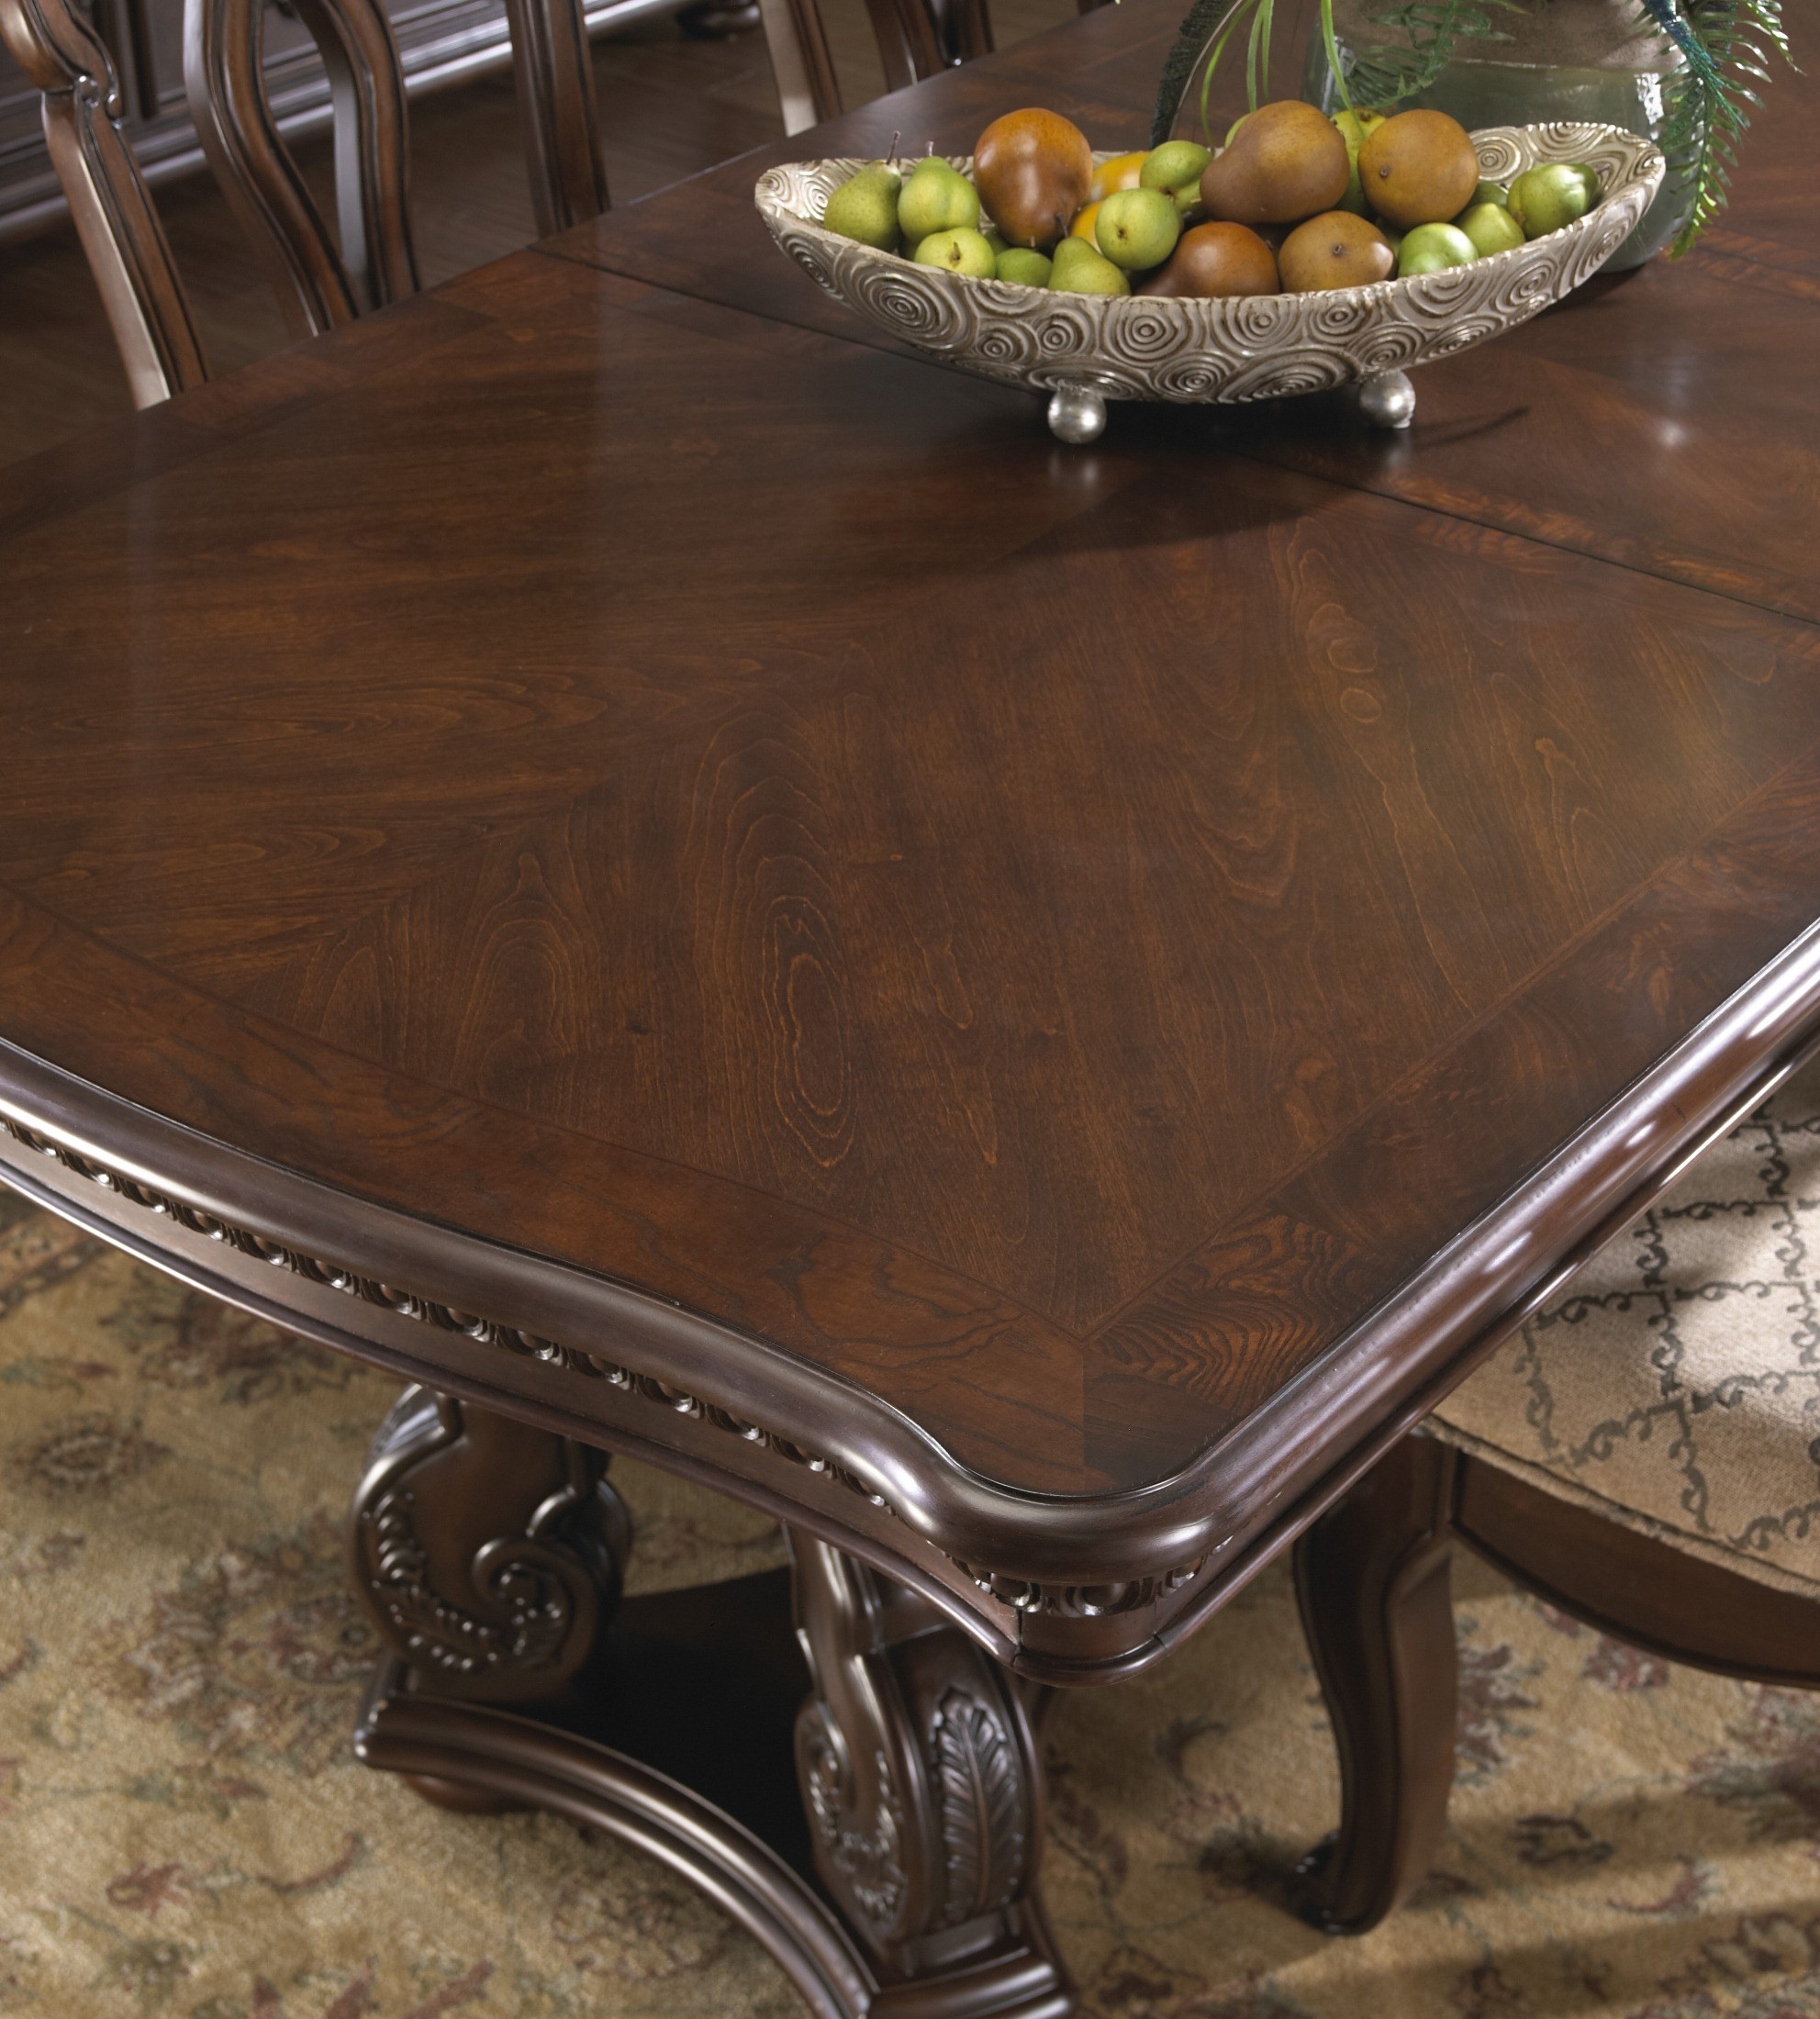 San Marino Dining Room Collection From Samuel Lawrence. 388139. 938599.  388140. 388141